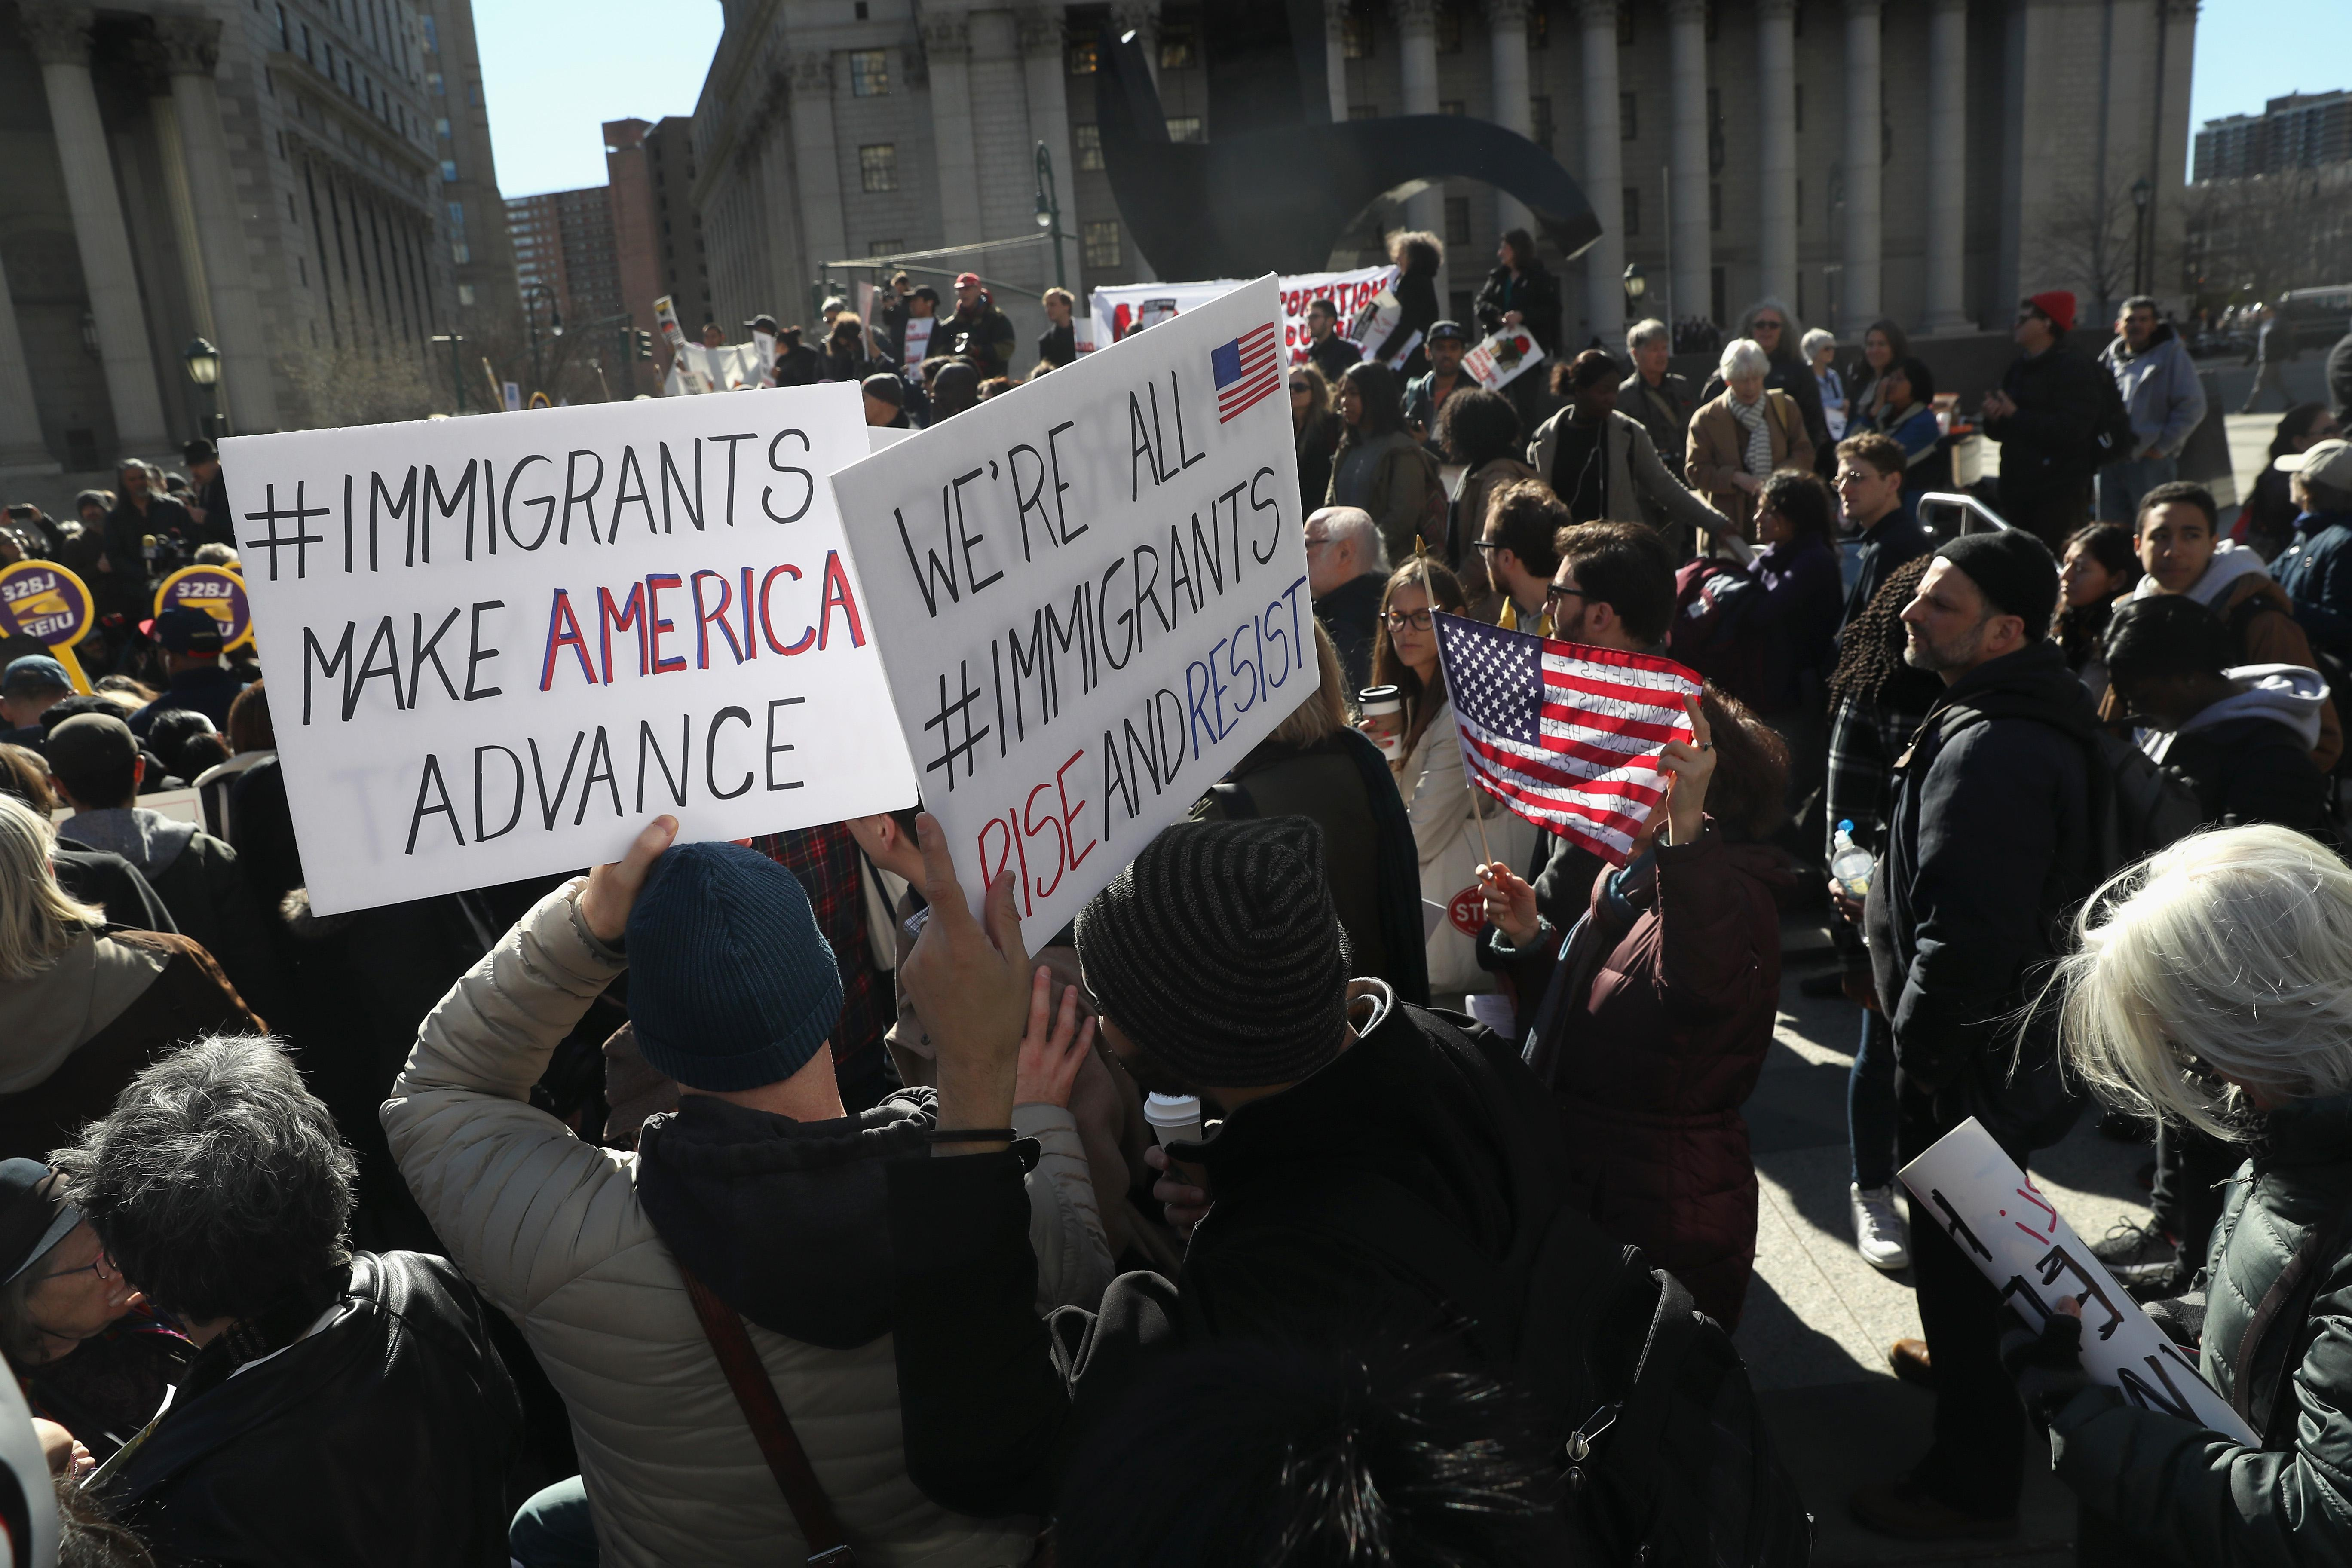 slate.com - Daniel Politi - White House Wants to Deny Green Cards to Immigrants Who Receive Public Benefits